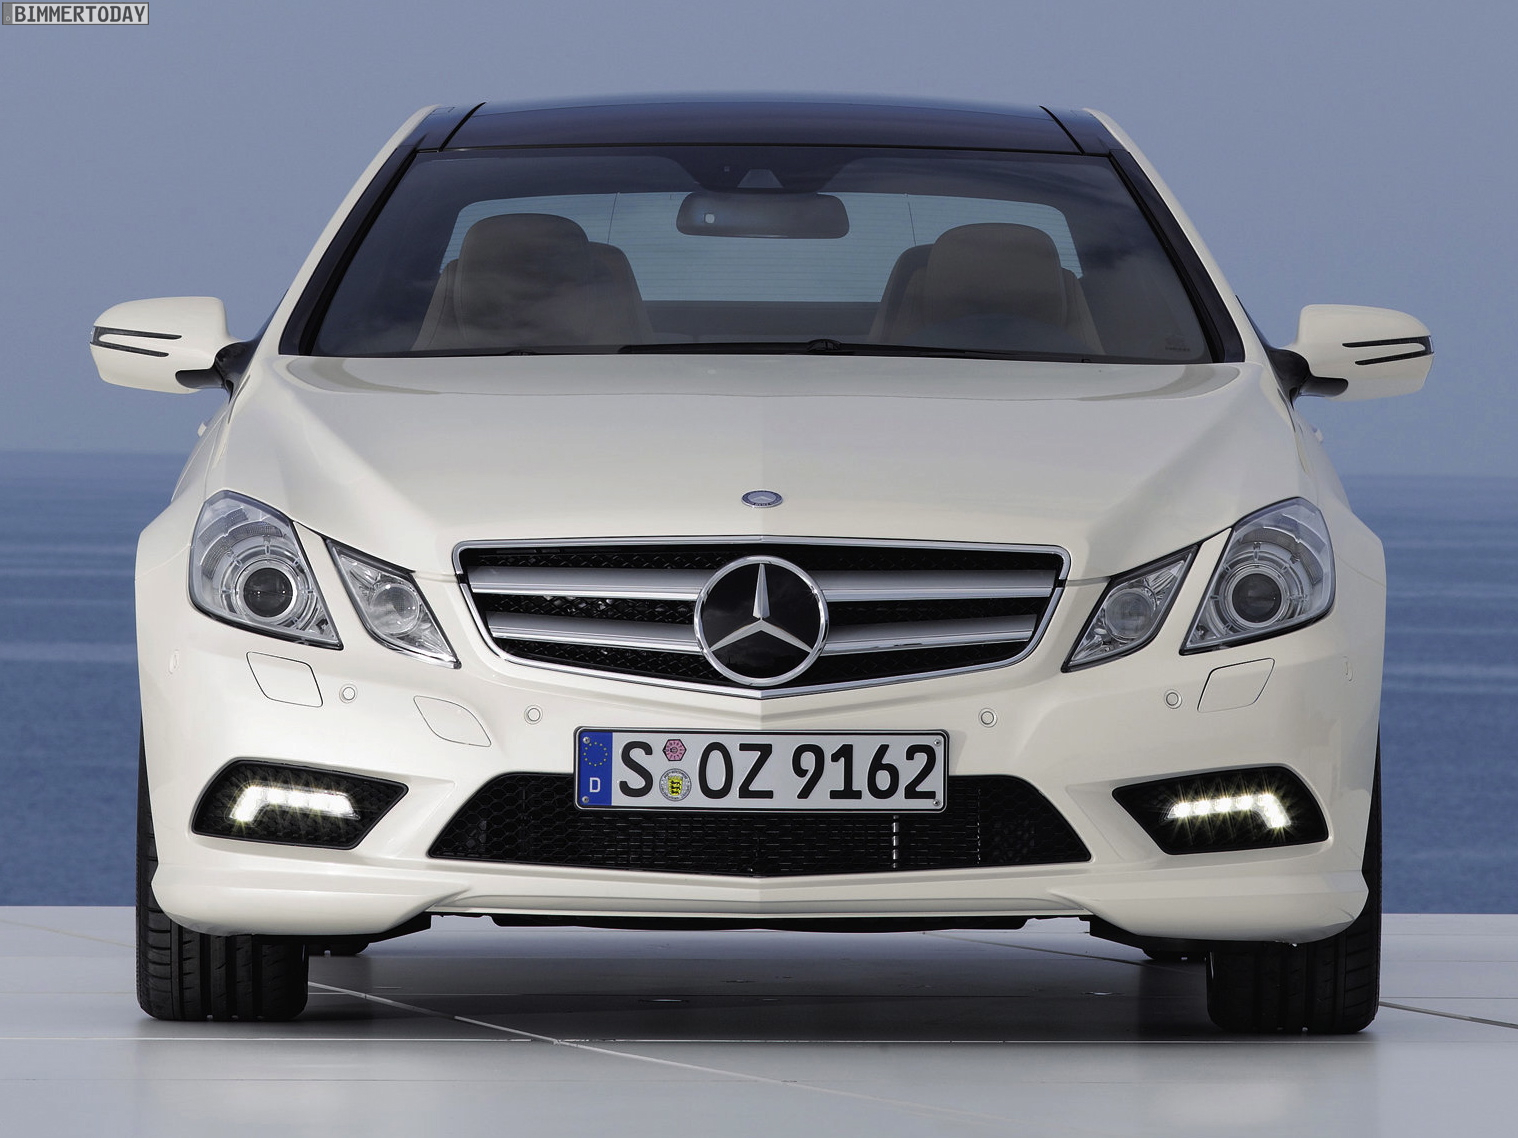 Mercedes benz e250 2012 review amazing pictures and for 2012 mercedes benz e350 review